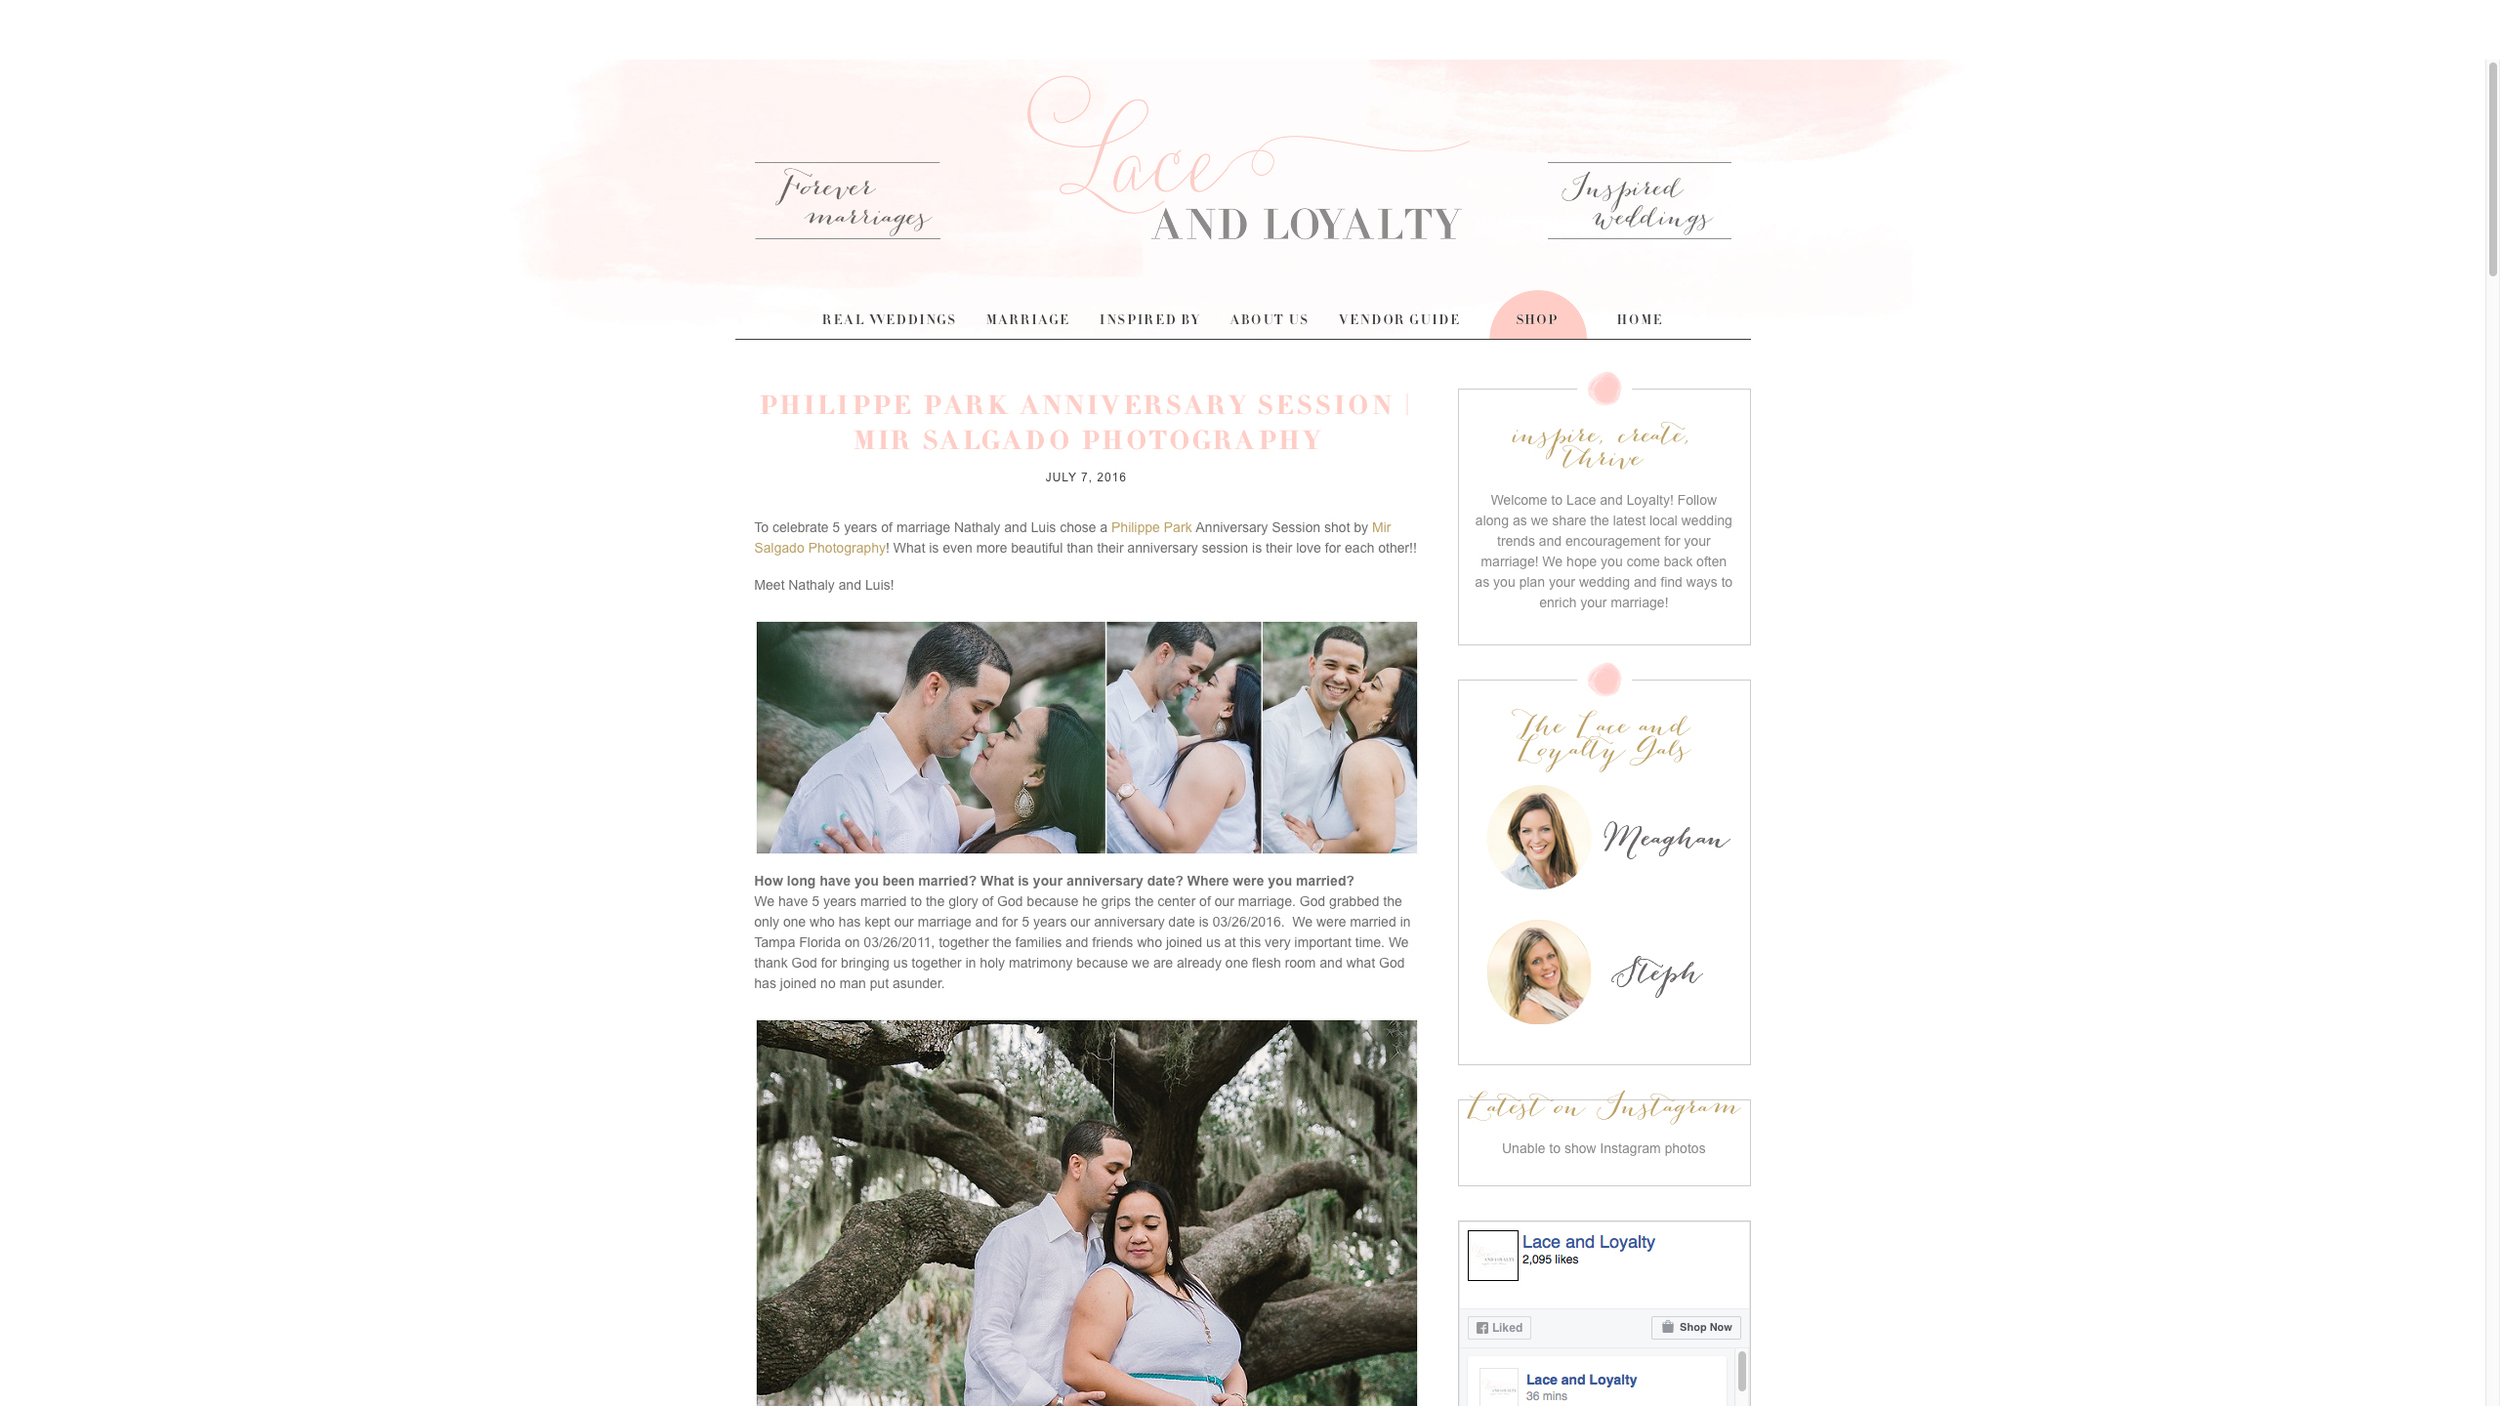 tampa wedding & portrait photographer feature in Lace and Loyalty Bol